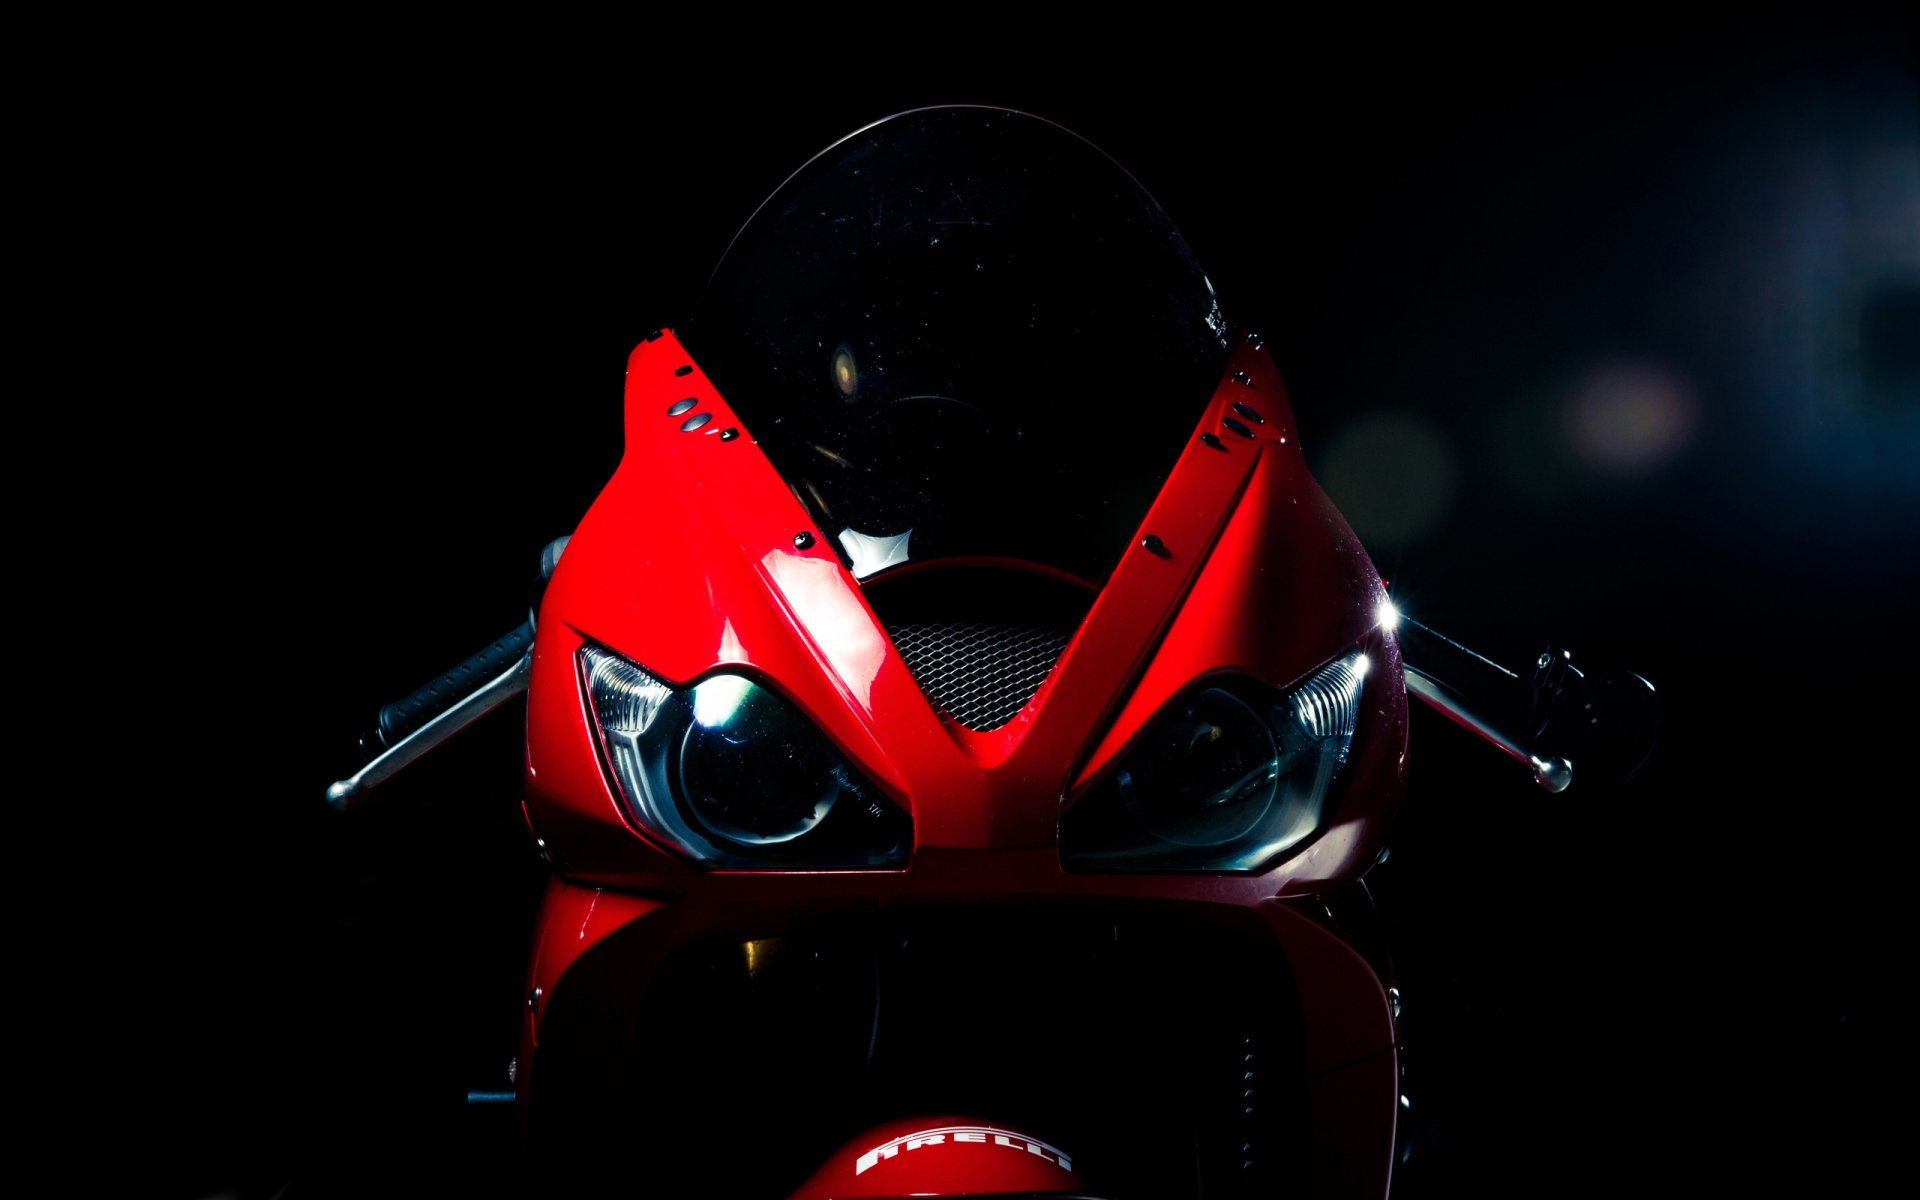 2 Triumph Daytona 675 Hd Wallpapers Background Images